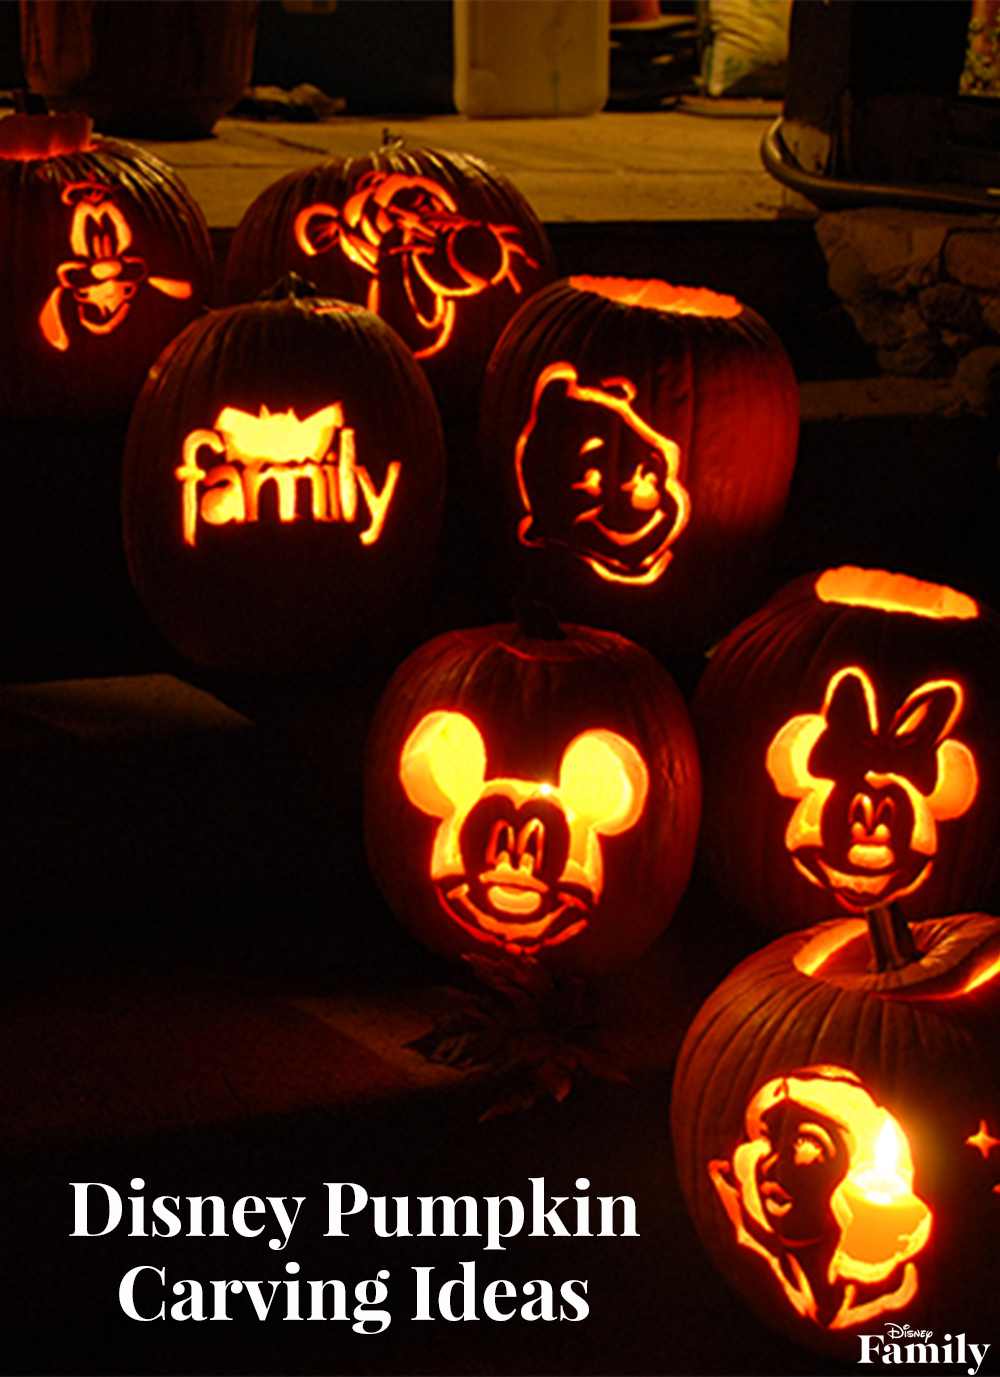 Easy Disney Pumpkin Carving Templates Ideas 2018   Pumpkin Carving Ideas - Free Printable Toy Story Pumpkin Carving Patterns